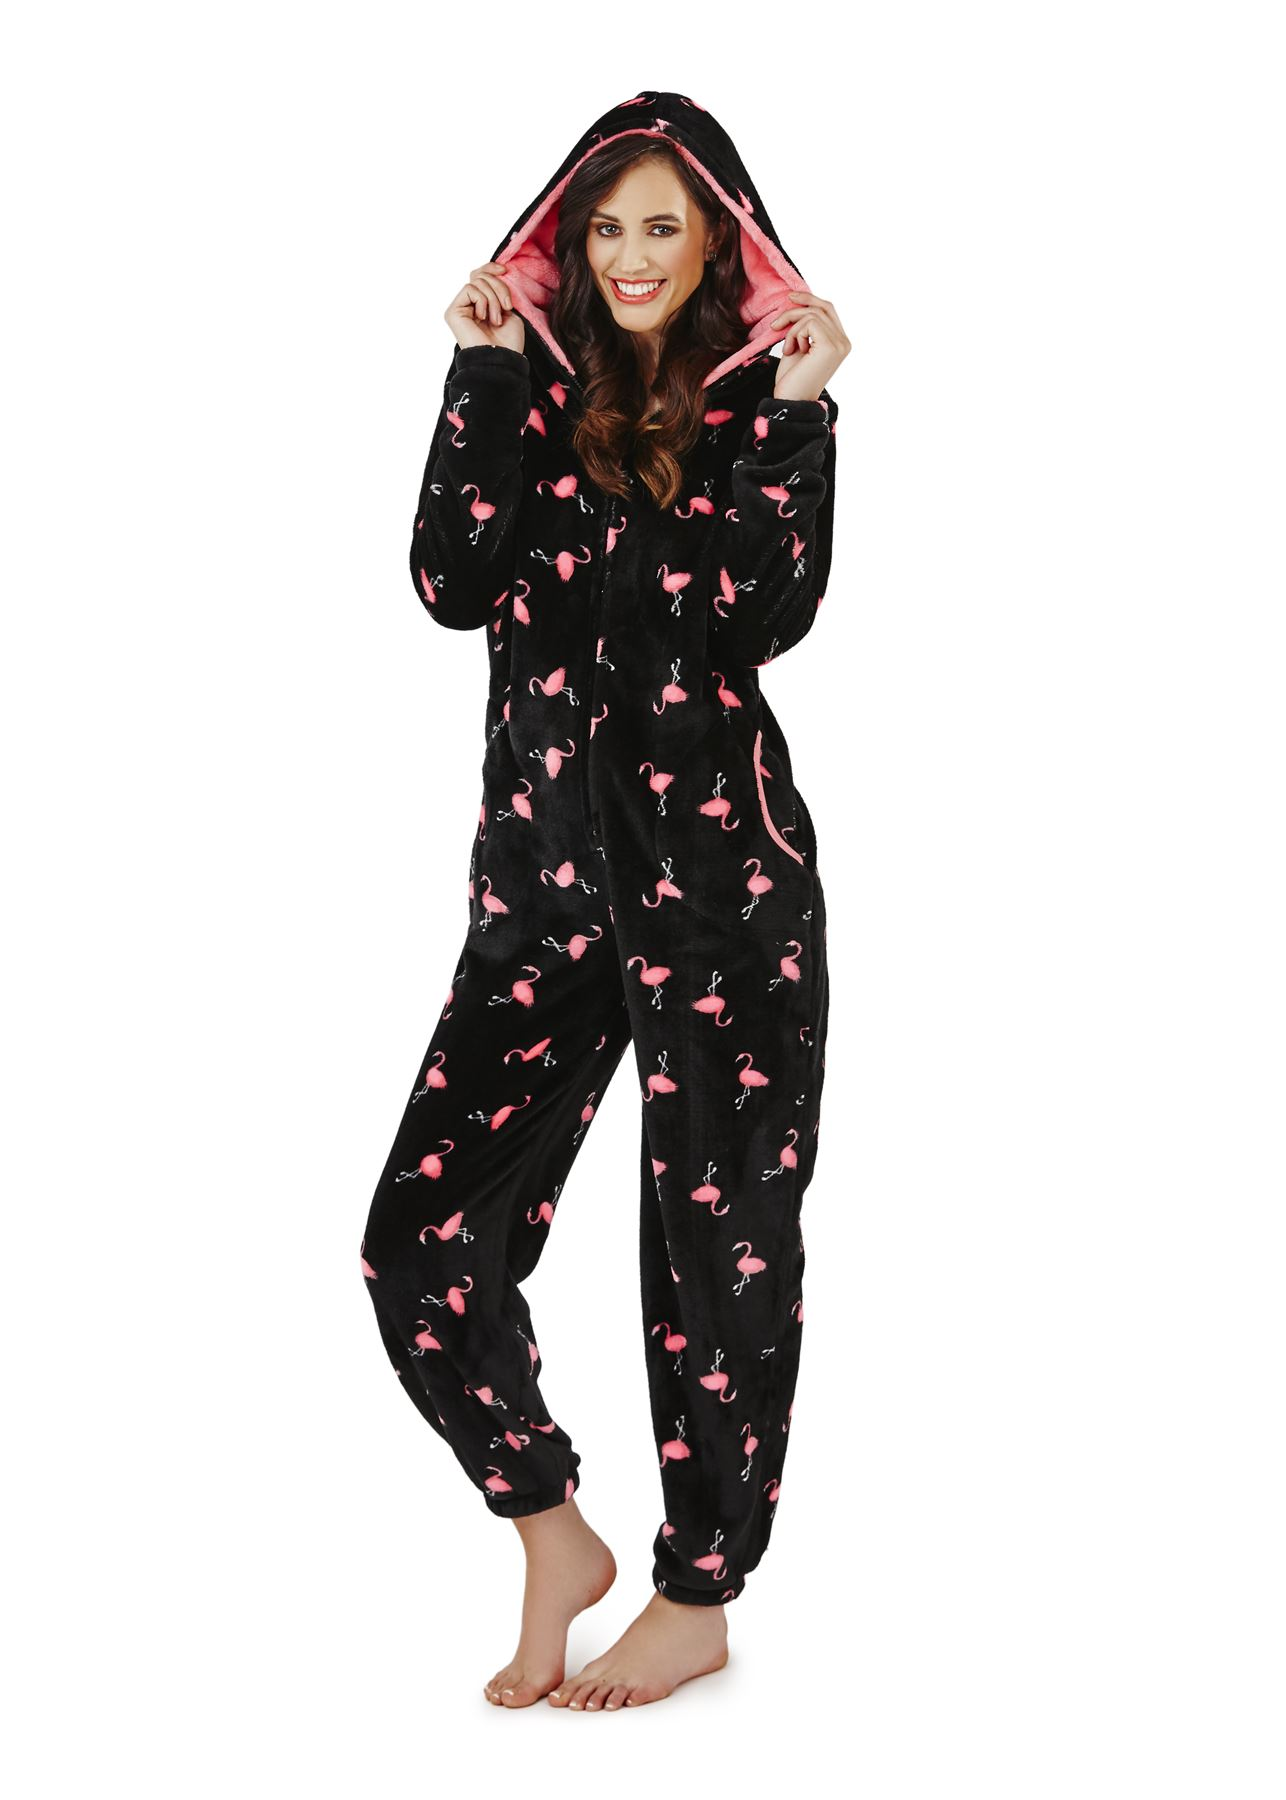 Shop womens pajamas cheap sale online, you can buy sexy and cute onesie pajamas, pajama sets and plus size pajamas for women at wholesale prices on teraisompcz8d.ga